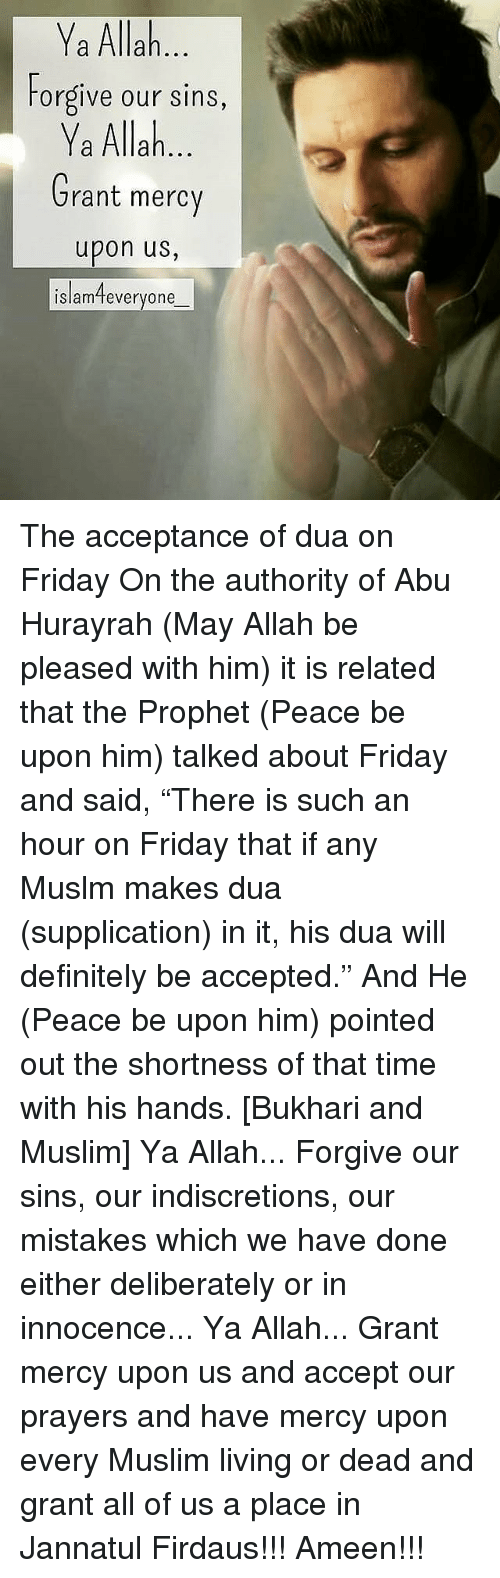 "abu: Ya Allah  Forgive our sins,  Ya Allah  Grant mercy  upon us,  islamteveryone The acceptance of dua on Friday On the authority of Abu Hurayrah (May Allah be pleased with him) it is related that the Prophet (Peace be upon him) talked about Friday and said, ""There is such an hour on Friday that if any Muslm makes dua (supplication) in it, his dua will definitely be accepted."" And He (Peace be upon him) pointed out the shortness of that time with his hands. [Bukhari and Muslim] Ya Allah... Forgive our sins, our indiscretions, our mistakes which we have done either deliberately or in innocence... Ya Allah... Grant mercy upon us and accept our prayers and have mercy upon every Muslim living or dead and grant all of us a place in Jannatul Firdaus!!! Ameen!!!"